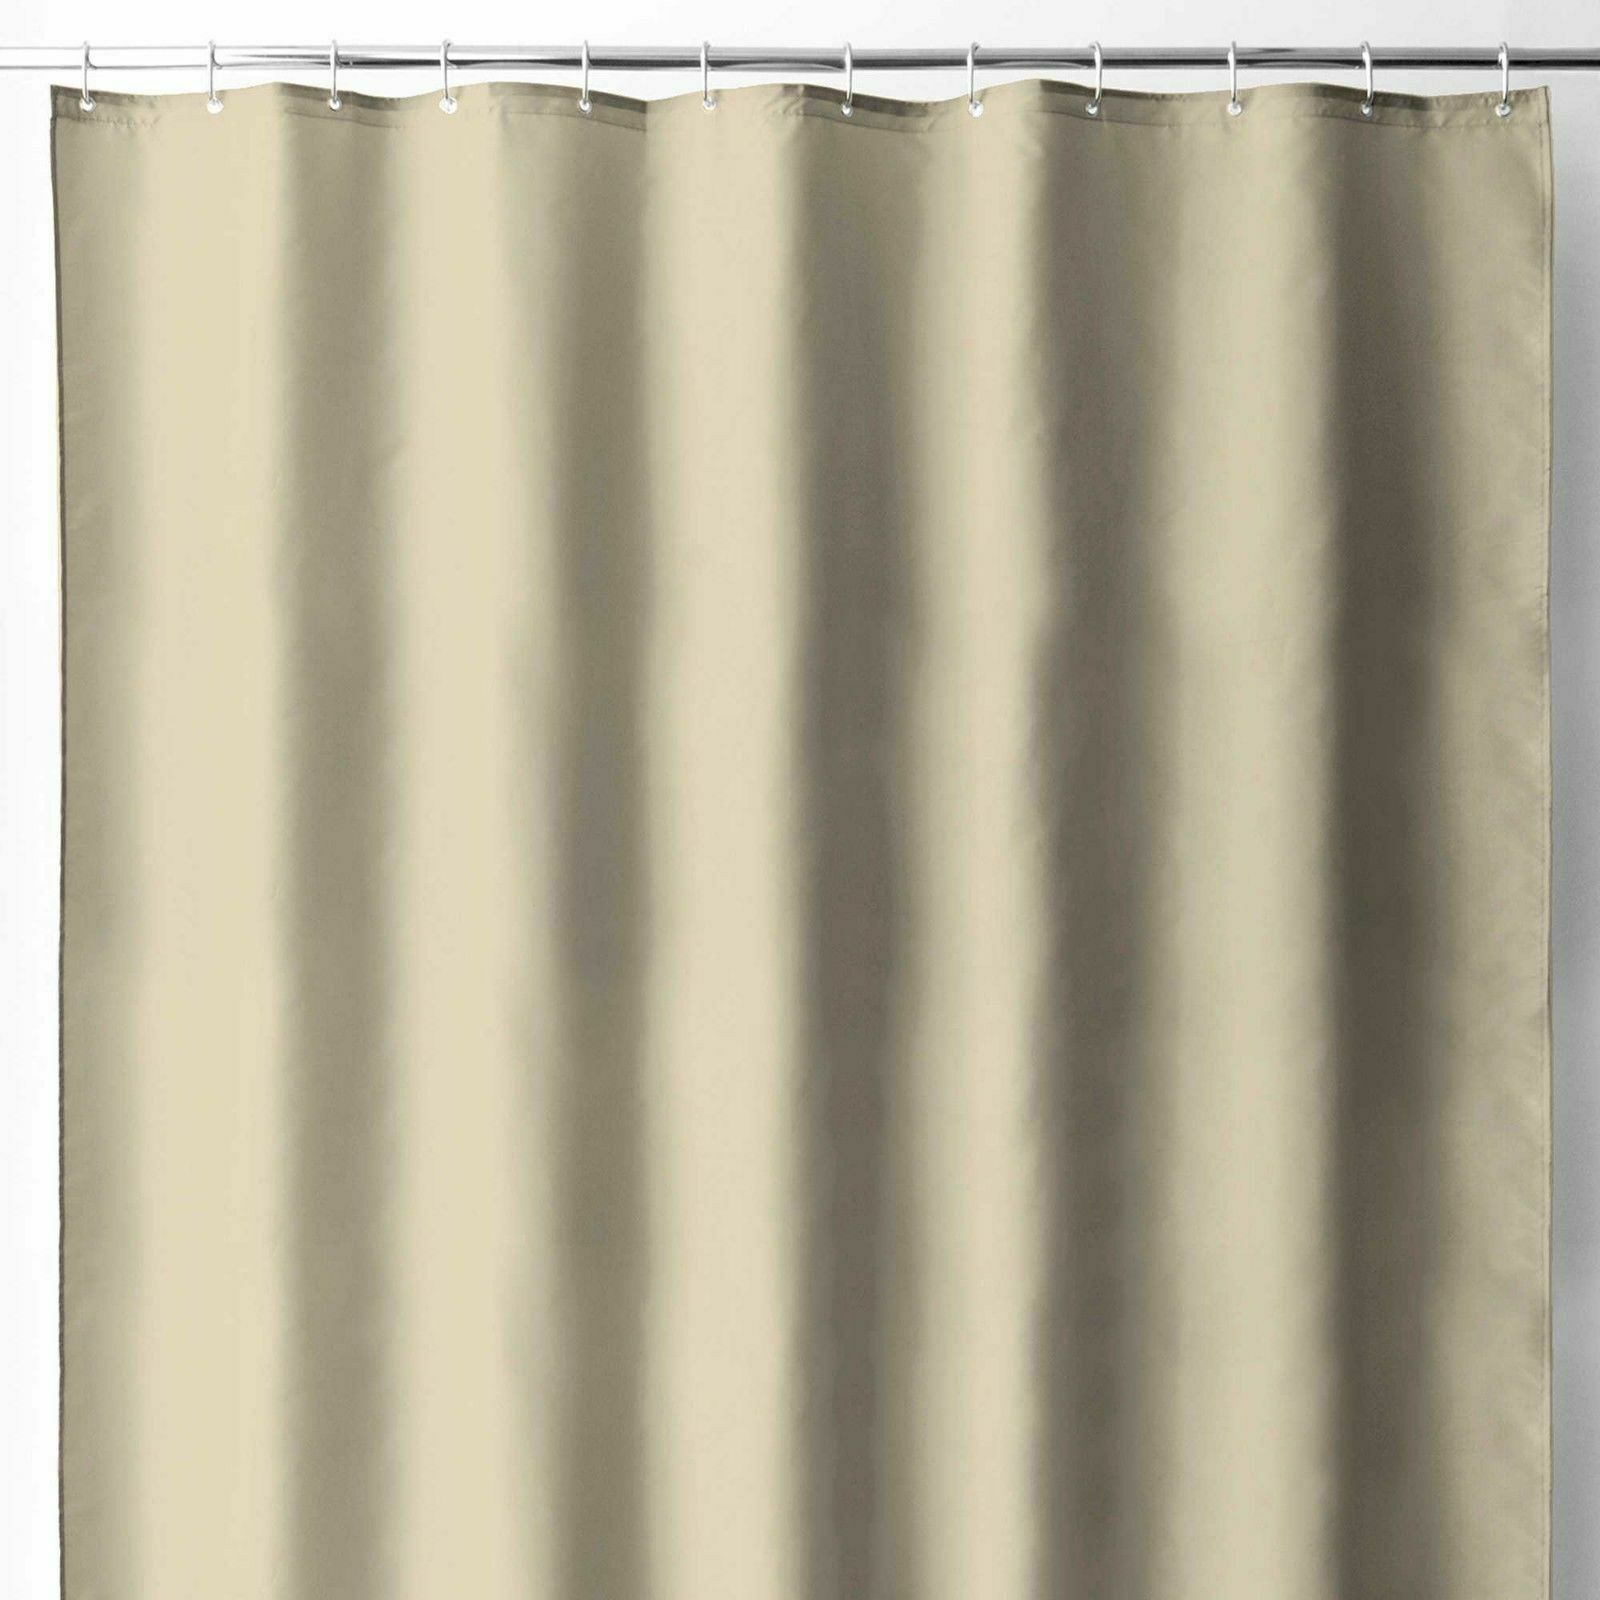 Details About New Wamsutta Luxury Fabric Shower Curtain Liner W Suction Cups 70 X72 In Linen